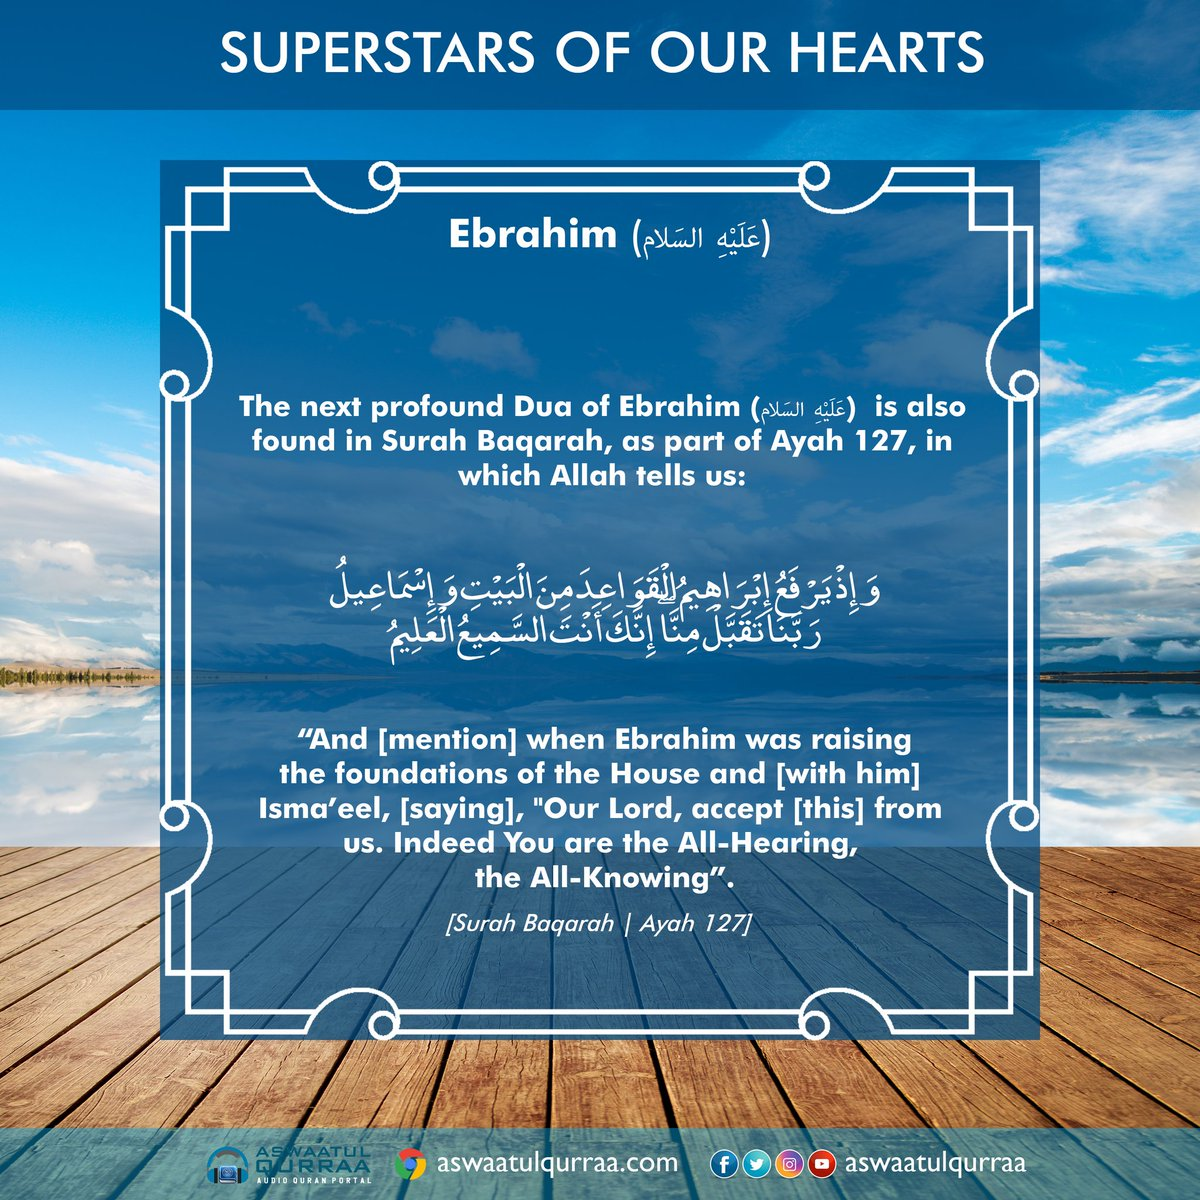 """And [mention] when Ebrahim was raising the foundations of the House and [with him] Isma'eel, [saying], ""Our Lord, accept [this] from us. Indeed You are the All-Hearing, the All-Knowing"".#ramadhaan #ramadan1440 #ramadan2019 #aswaatulqurraa #islam #muslim #quran #رمضان"